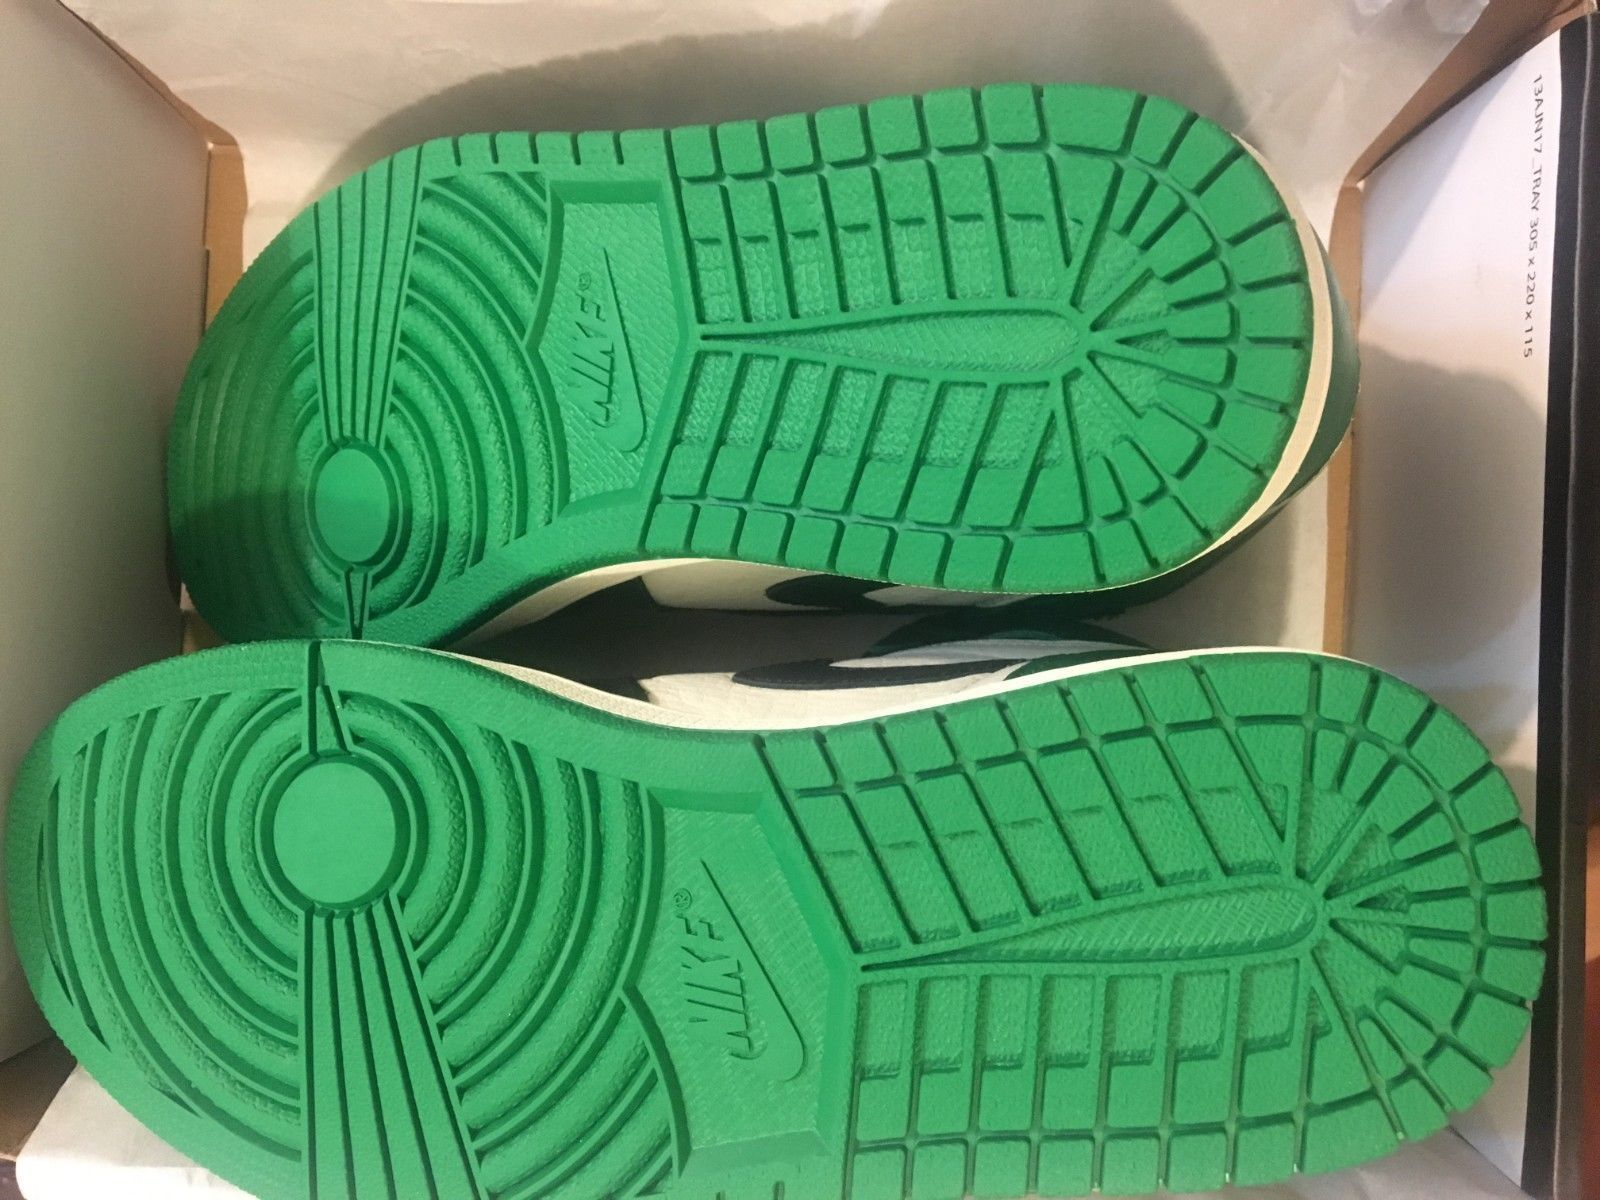 d79497488f2 Details about Nike Air Jordan 1 Retro High OG Pine Green Sail Black ...